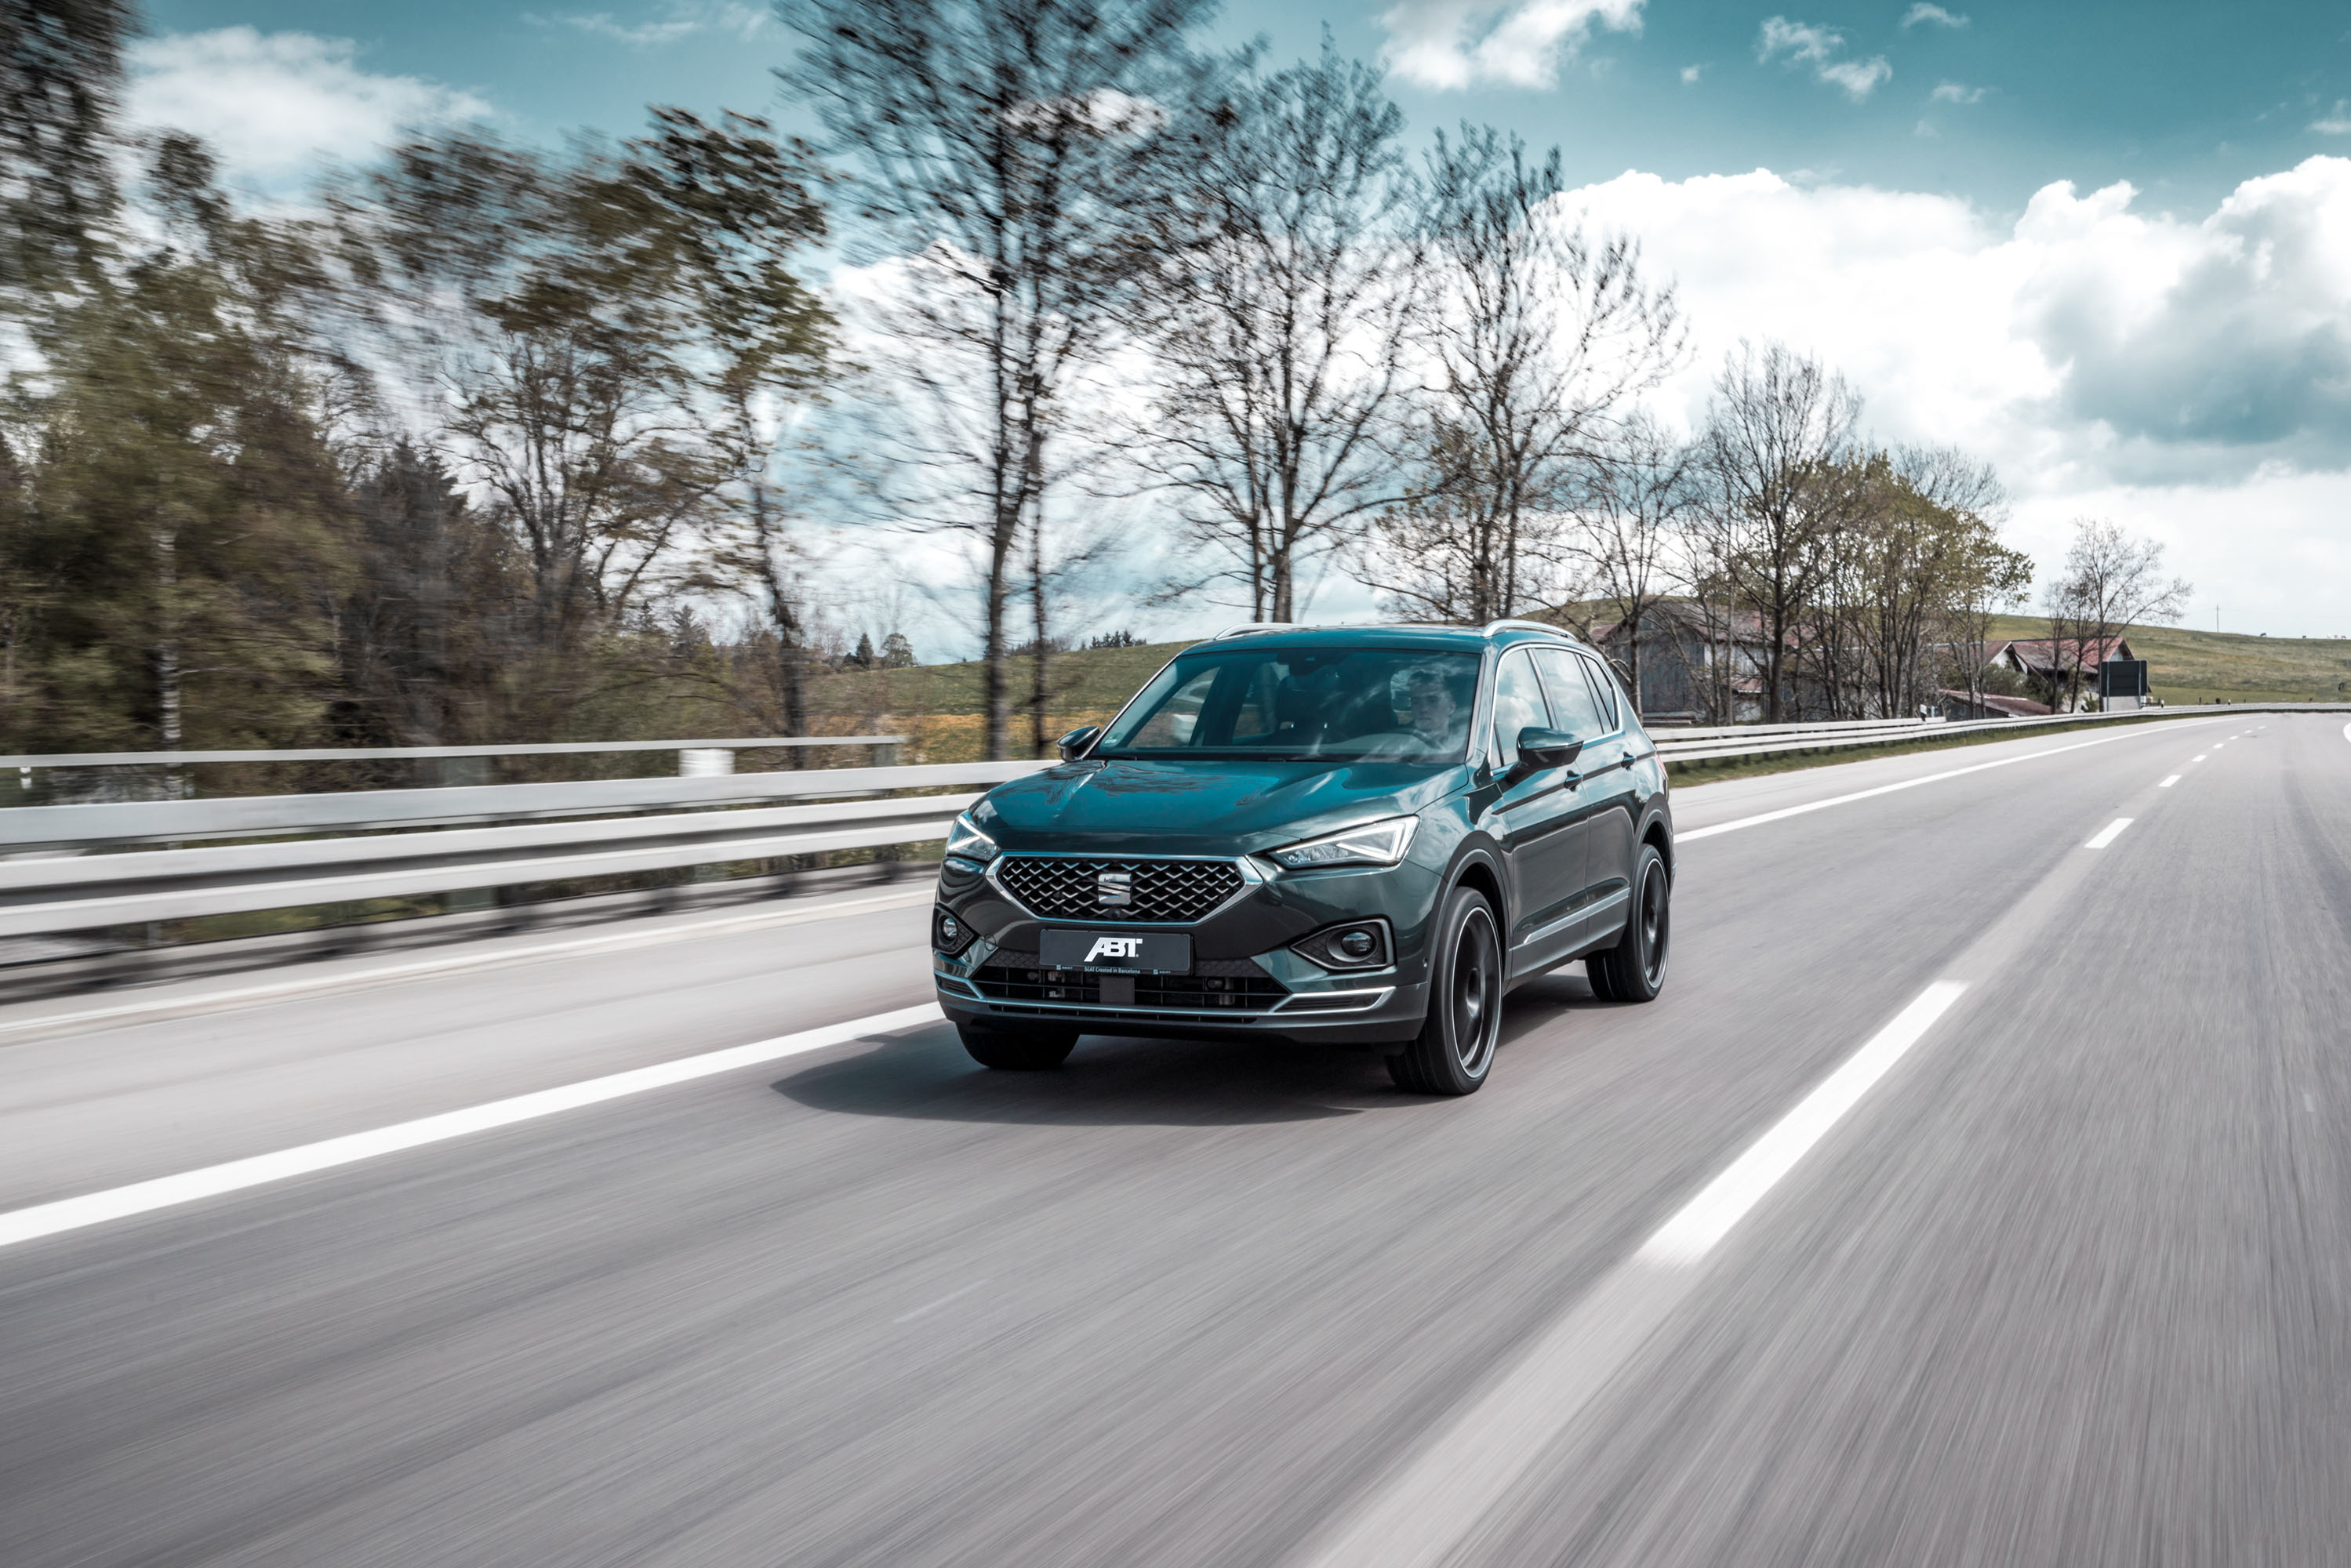 ABT Seat Tarraco photo #1